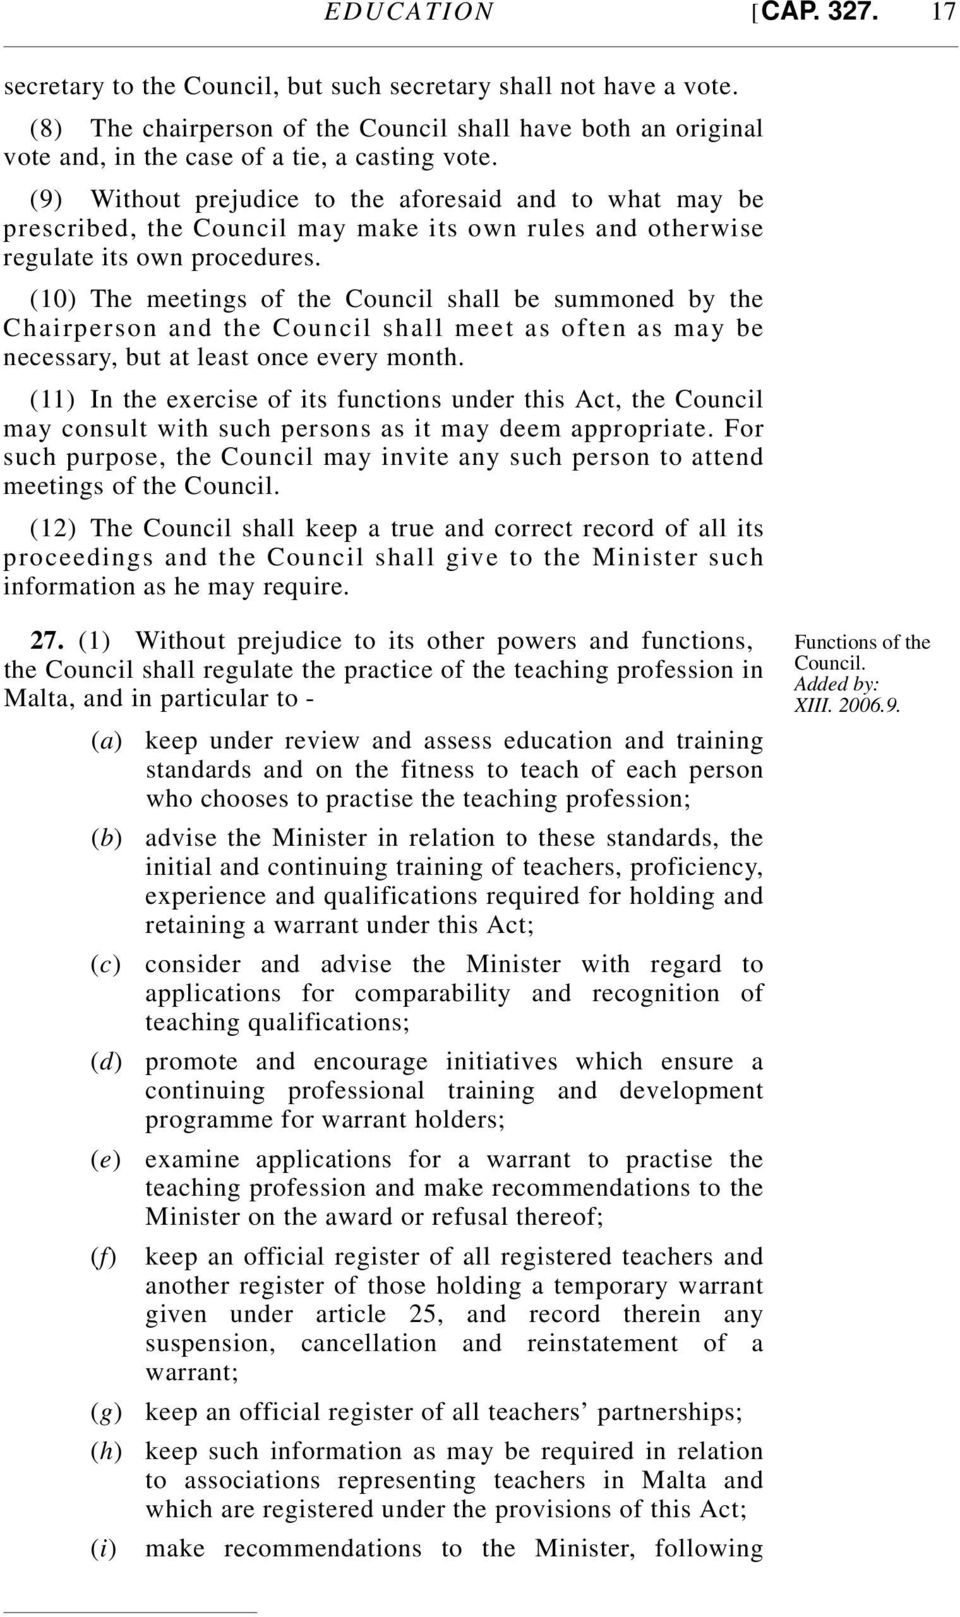 (9) Without prejudice to the aforesaid and to what may be prescribed, the Council may make its own rules and otherwise regulate its own procedures.